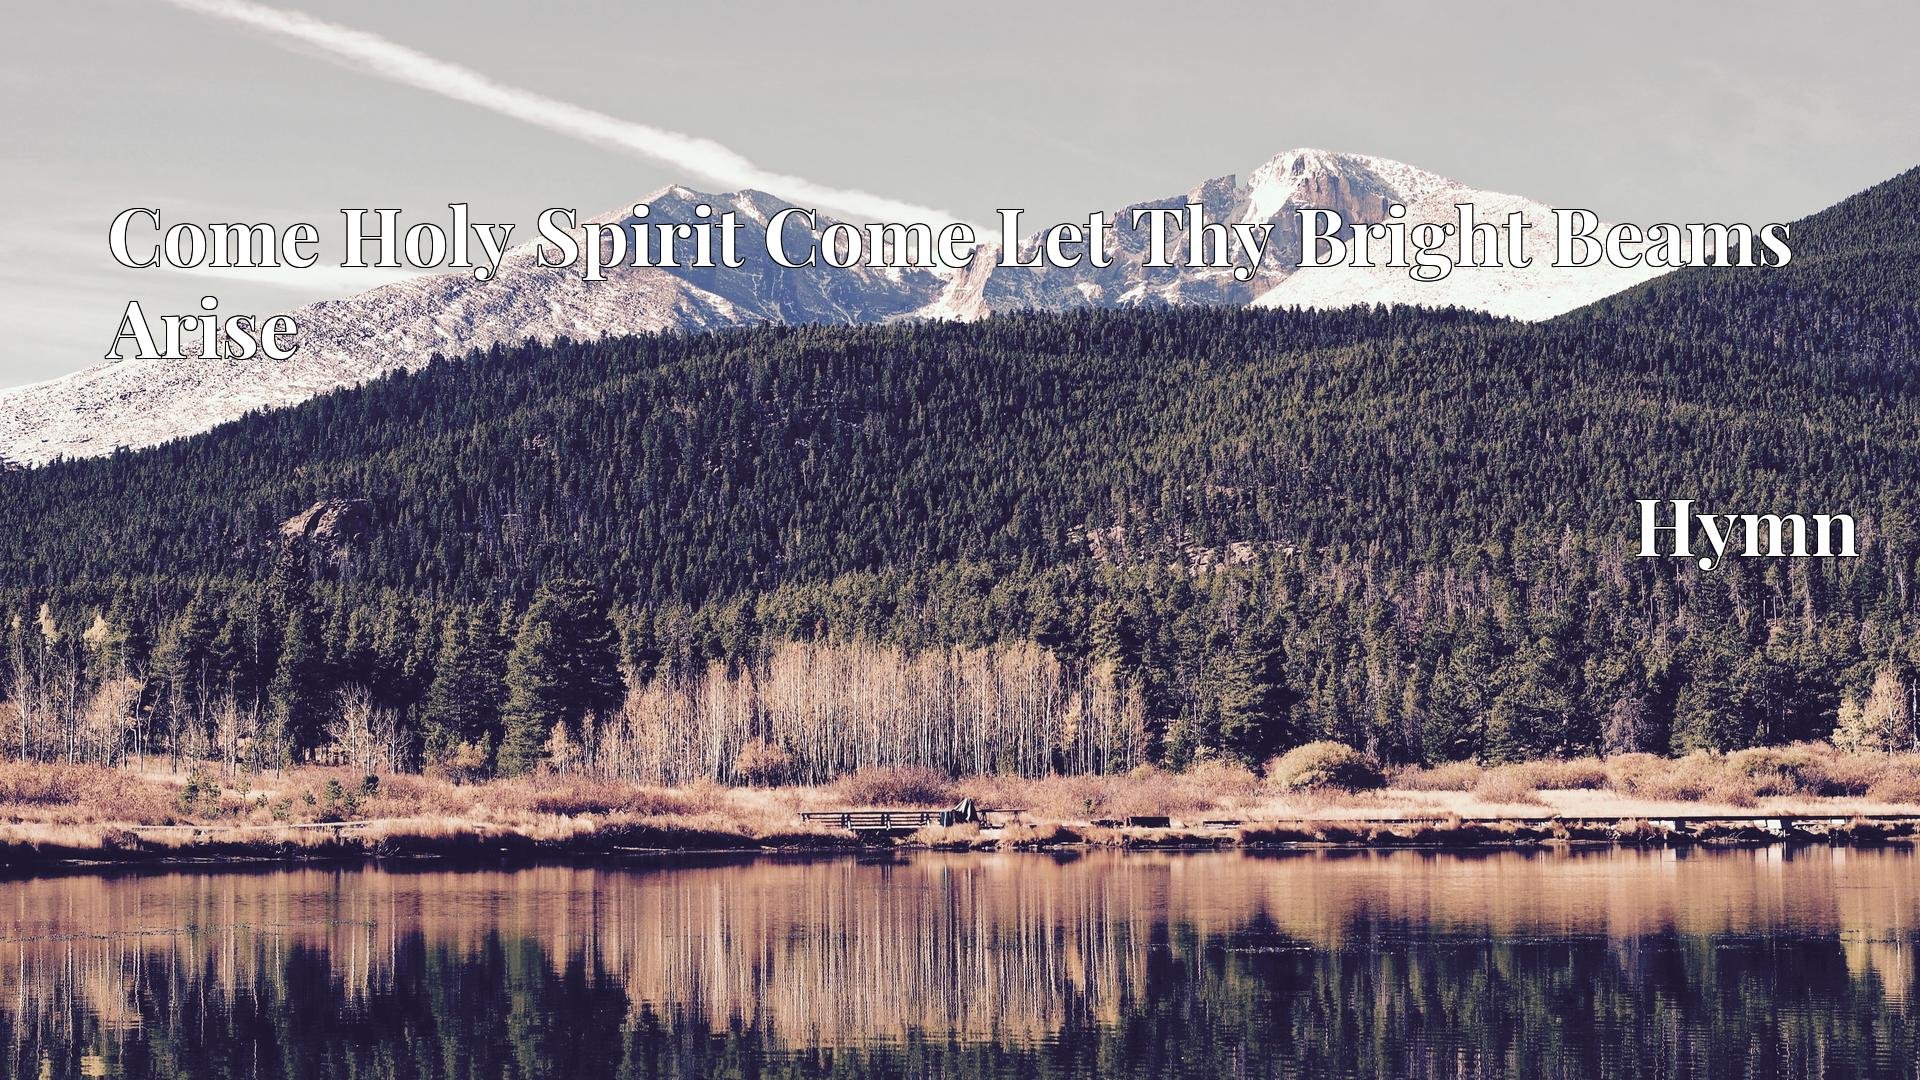 Come Holy Spirit Come Let Thy Bright Beams Arise - Hymn